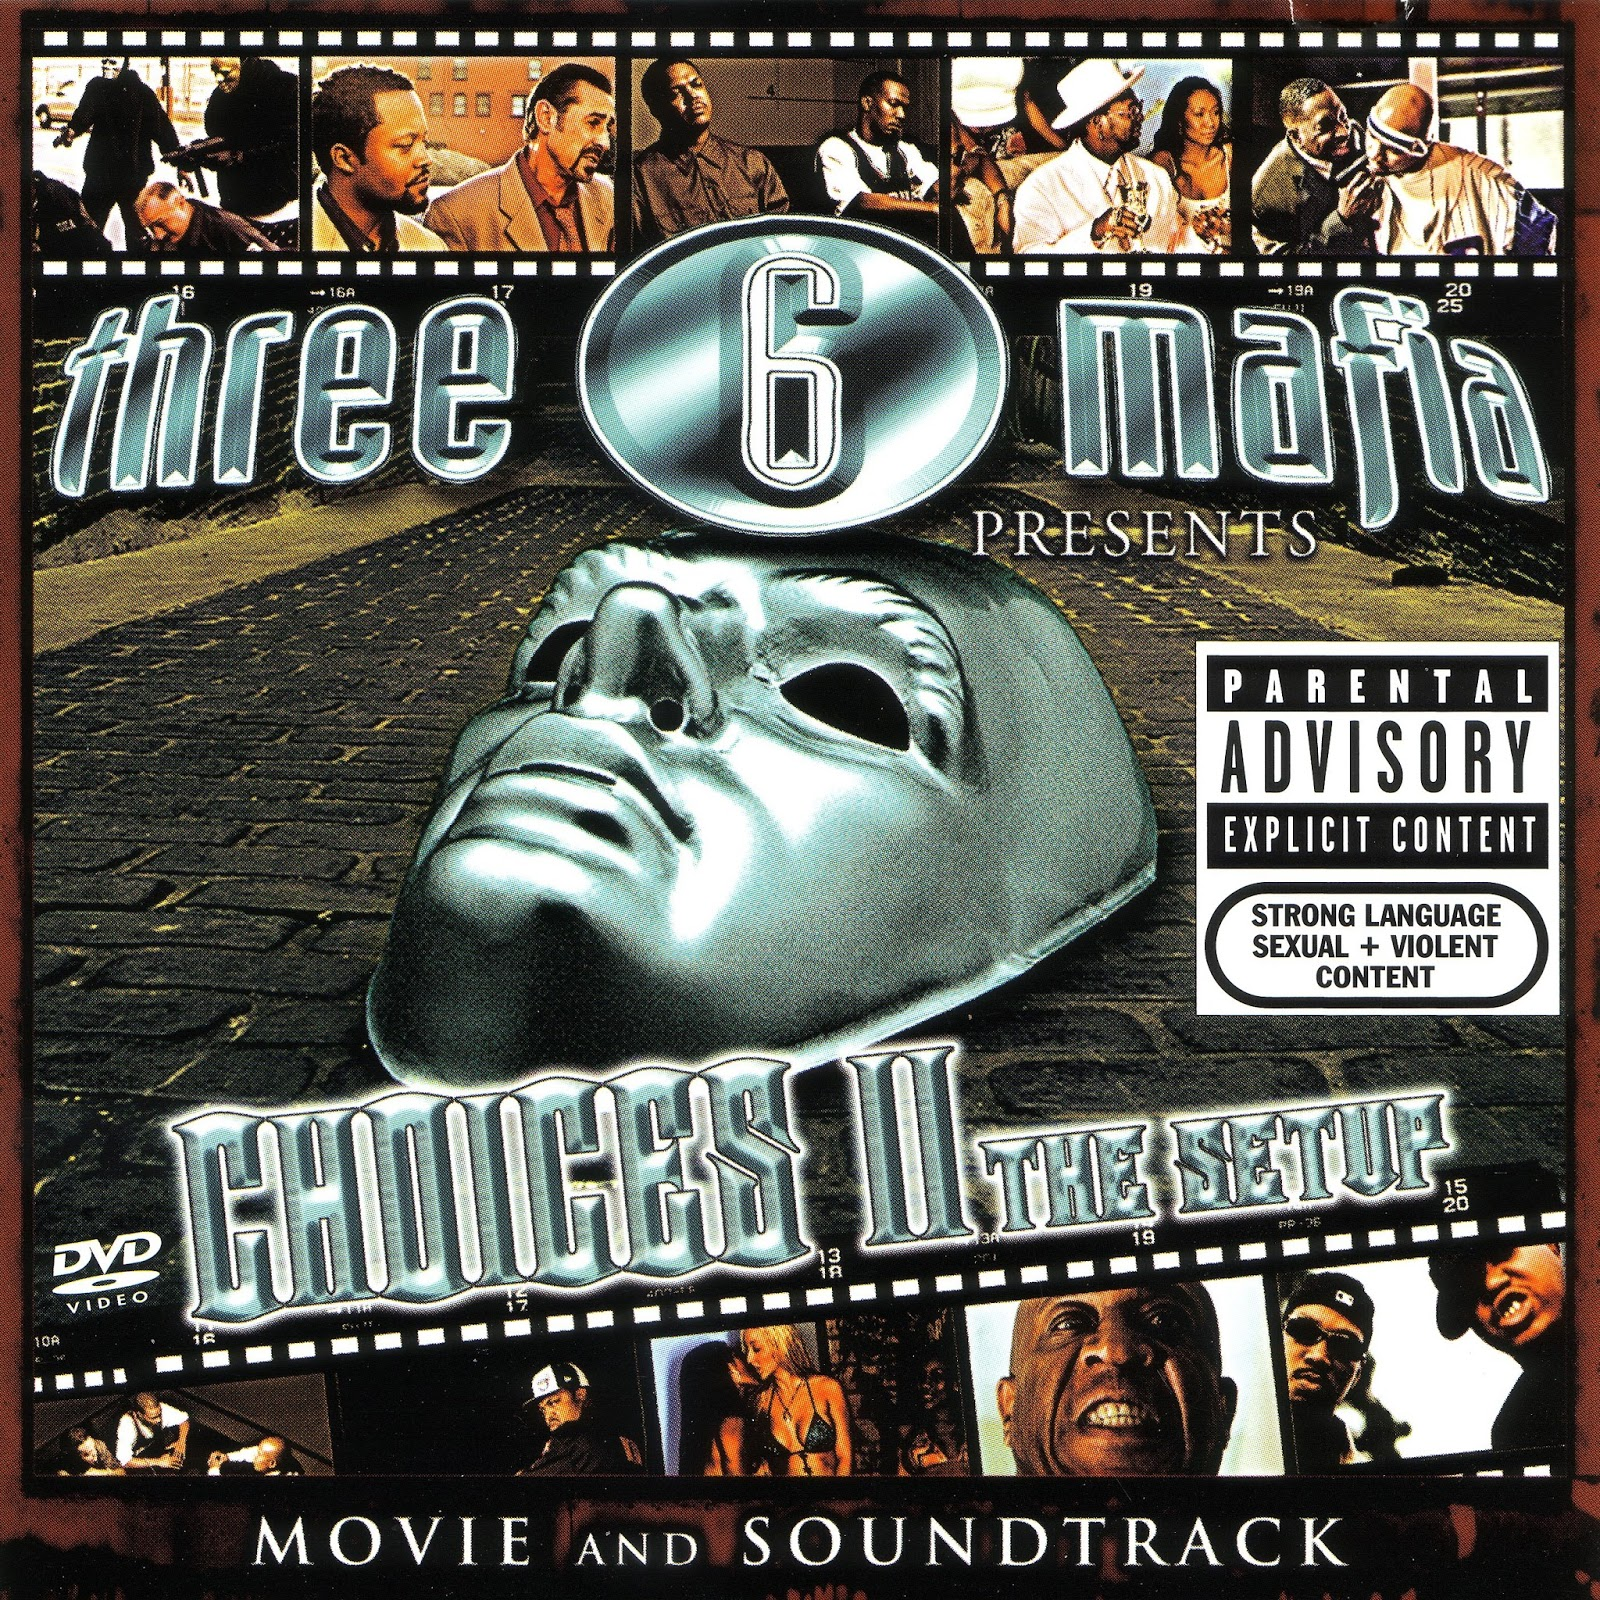 Three 6 mafia discography rar download | Download Three 6 Mafia